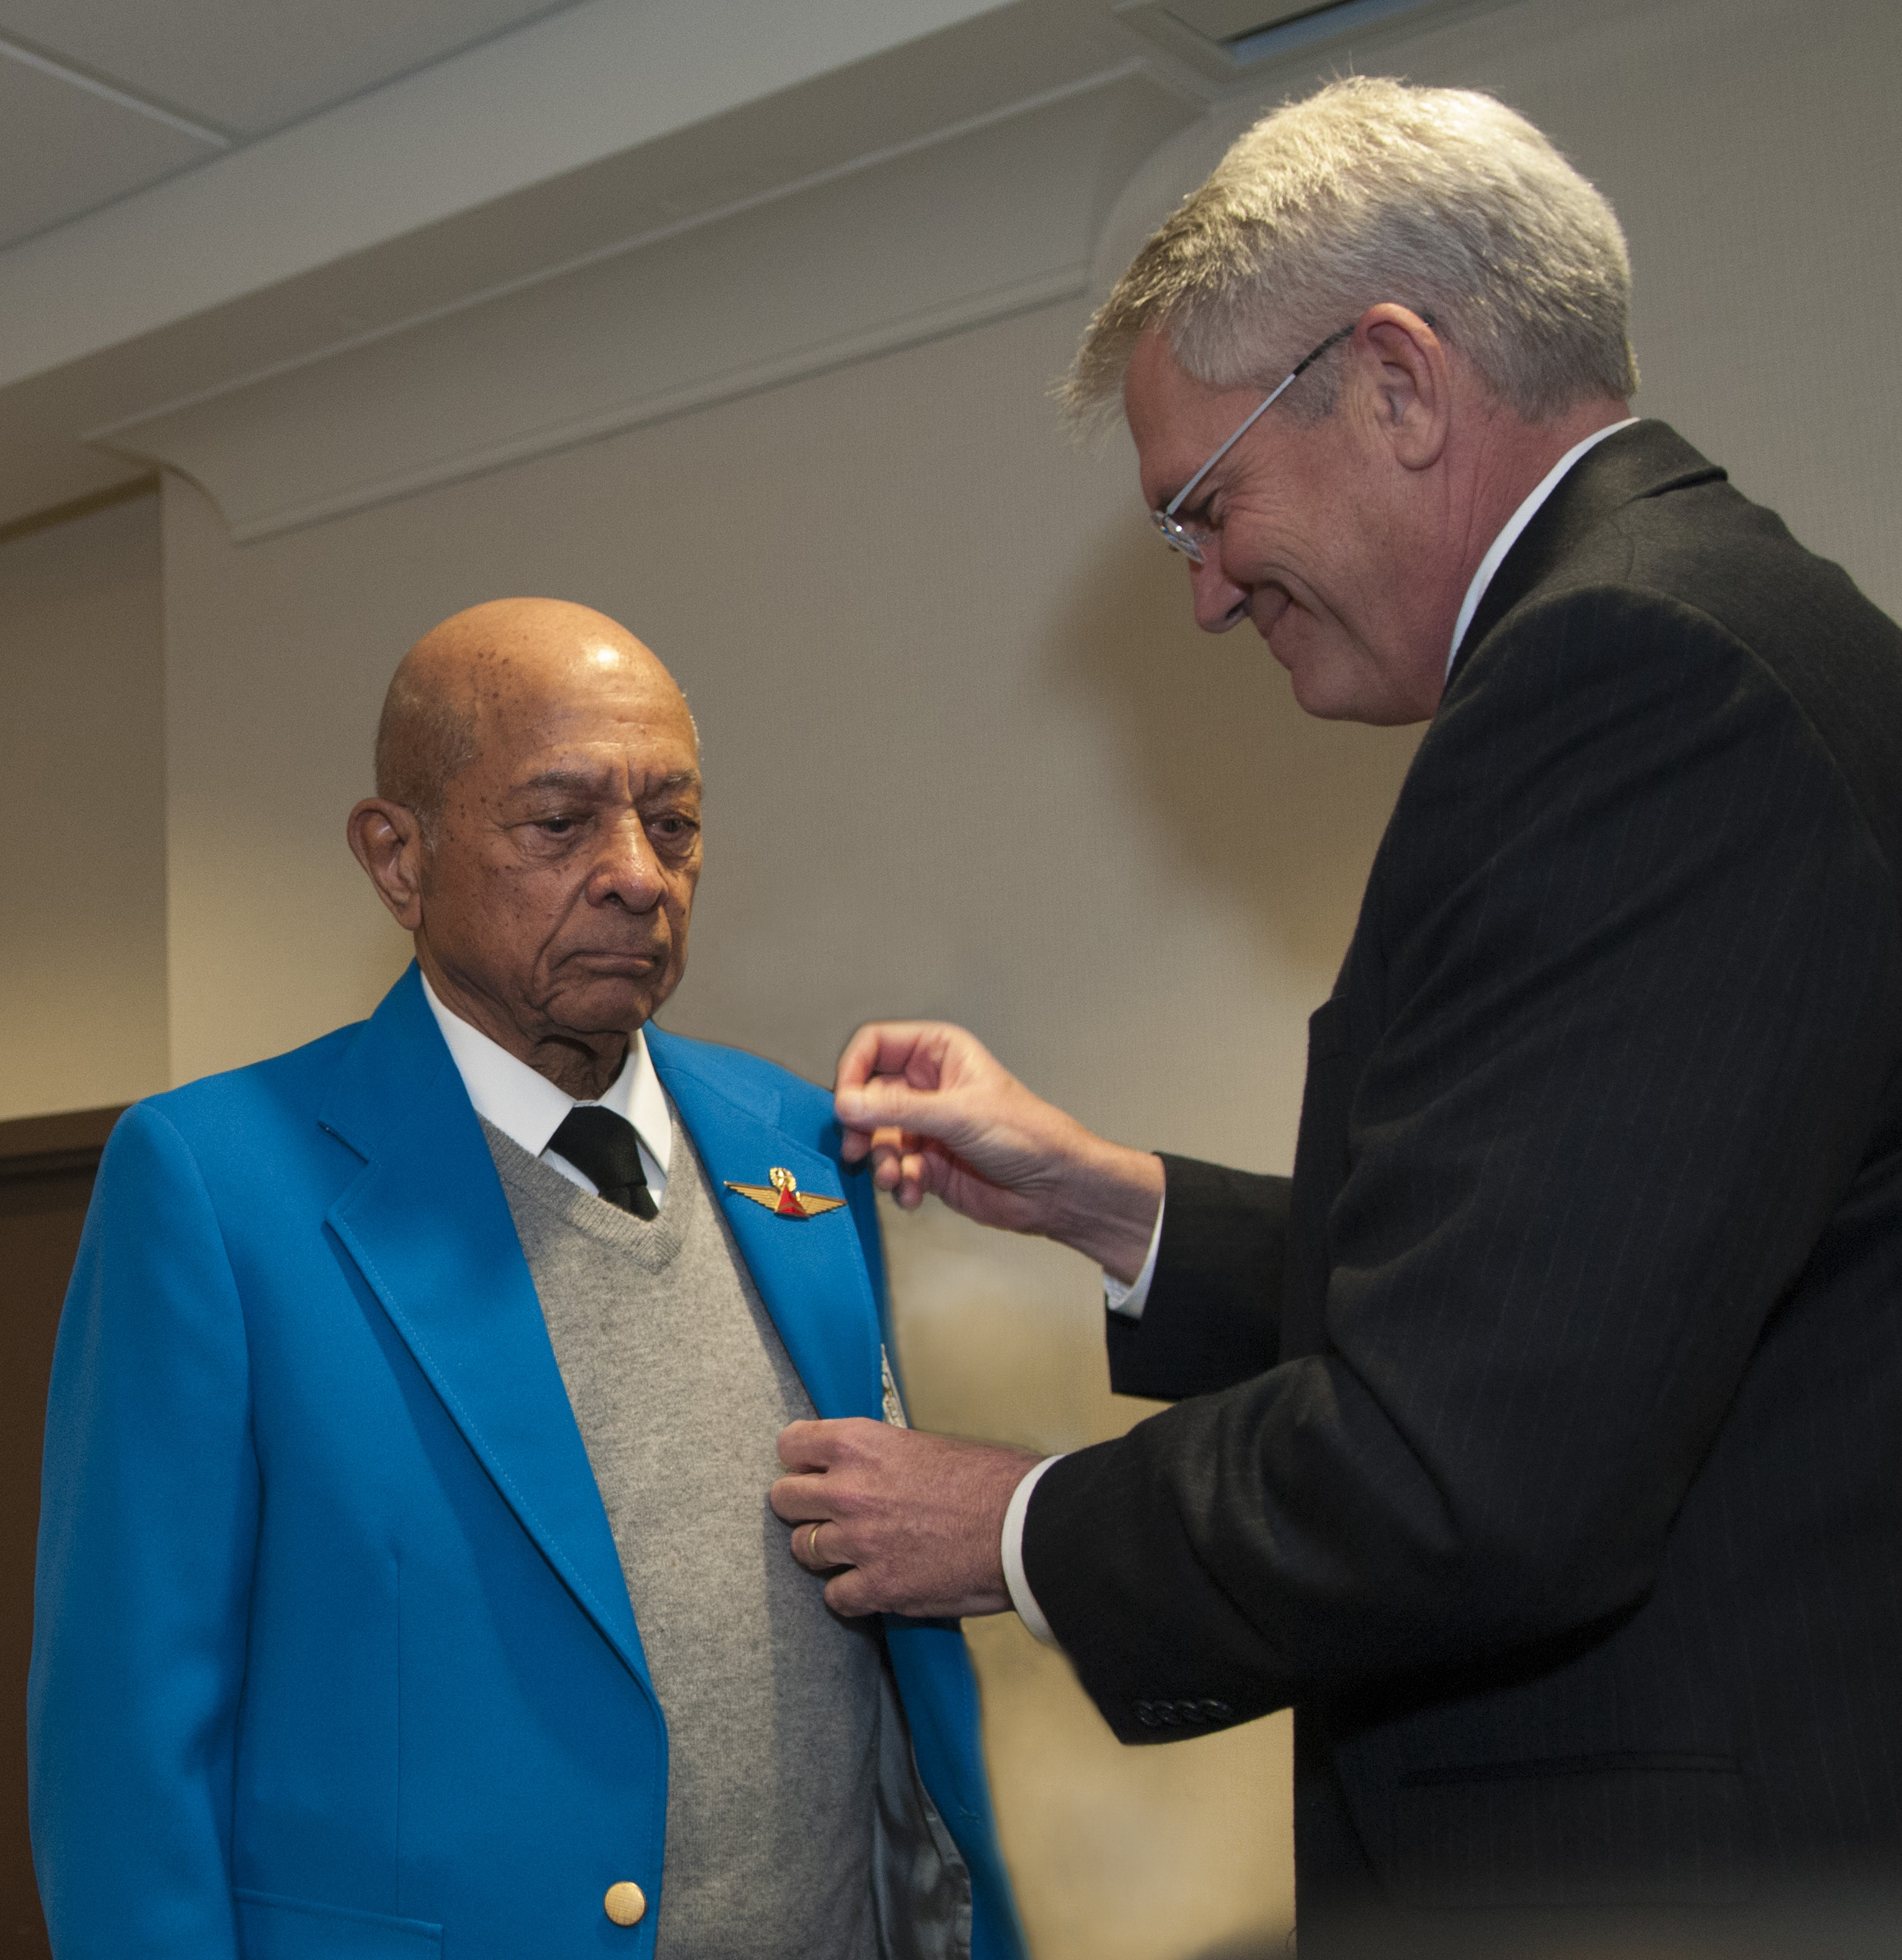 Lt. Col. Harry Stewart being pinned by Jim Graham